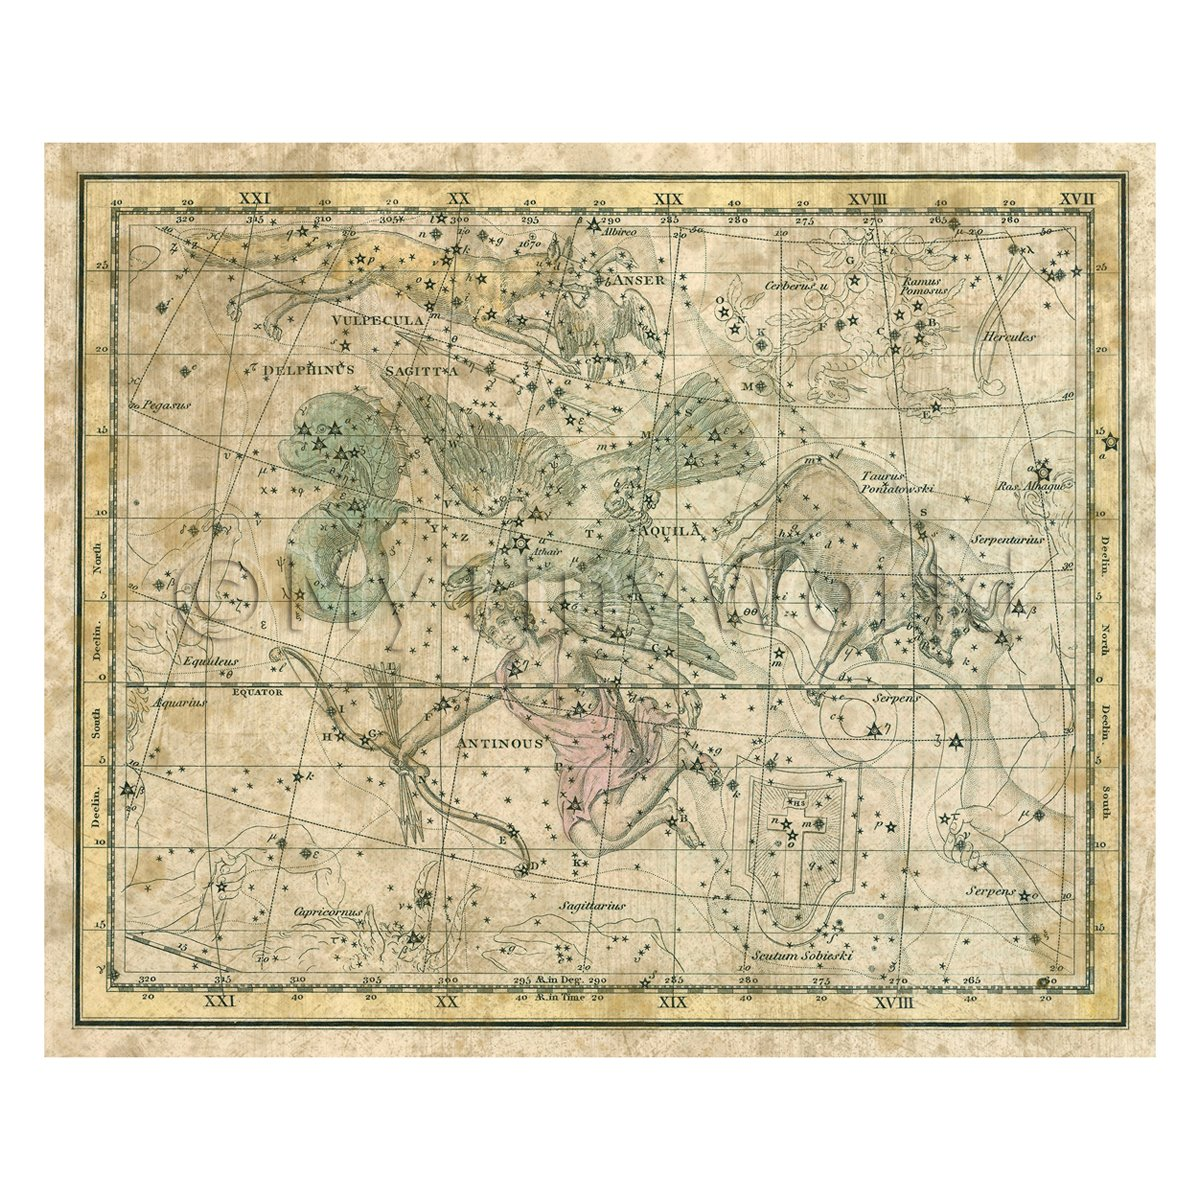 Dolls House Miniature Aged 1800s Star Map With Aquila, Delphinus And Antinous